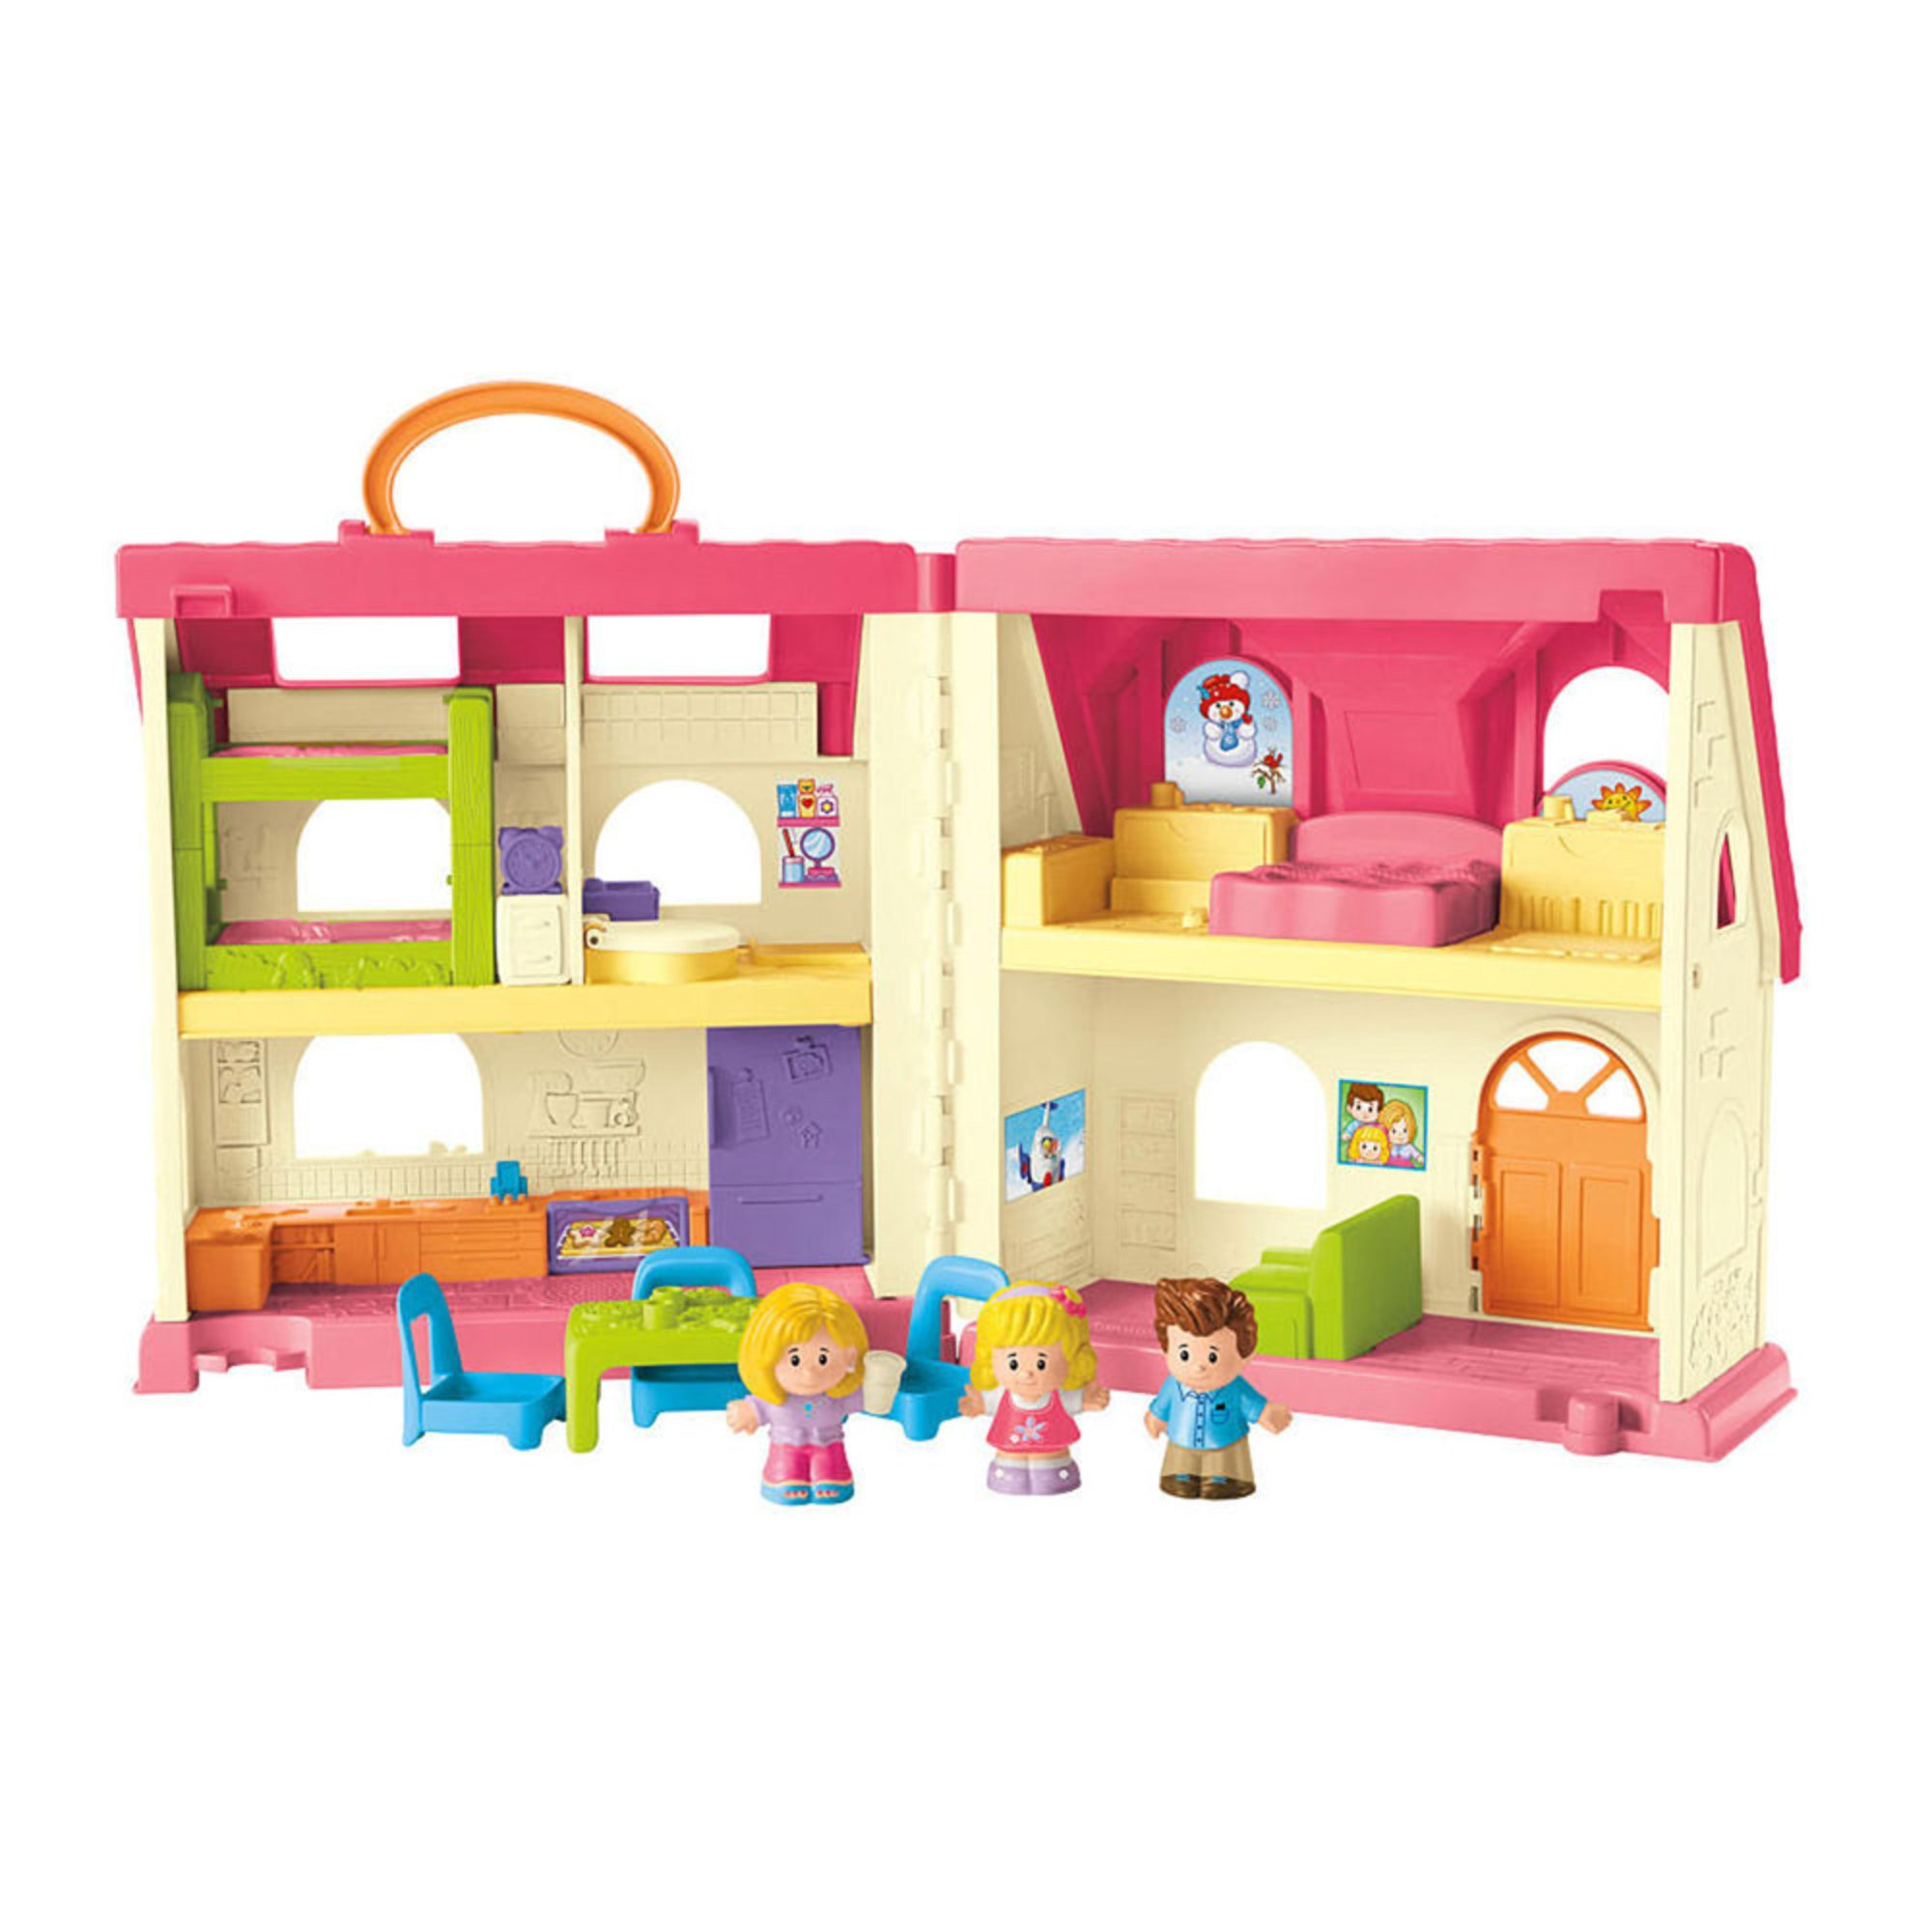 Little People Surprise Sounds Home Furniture Vehicles Dollhouses Baby Kids Toys